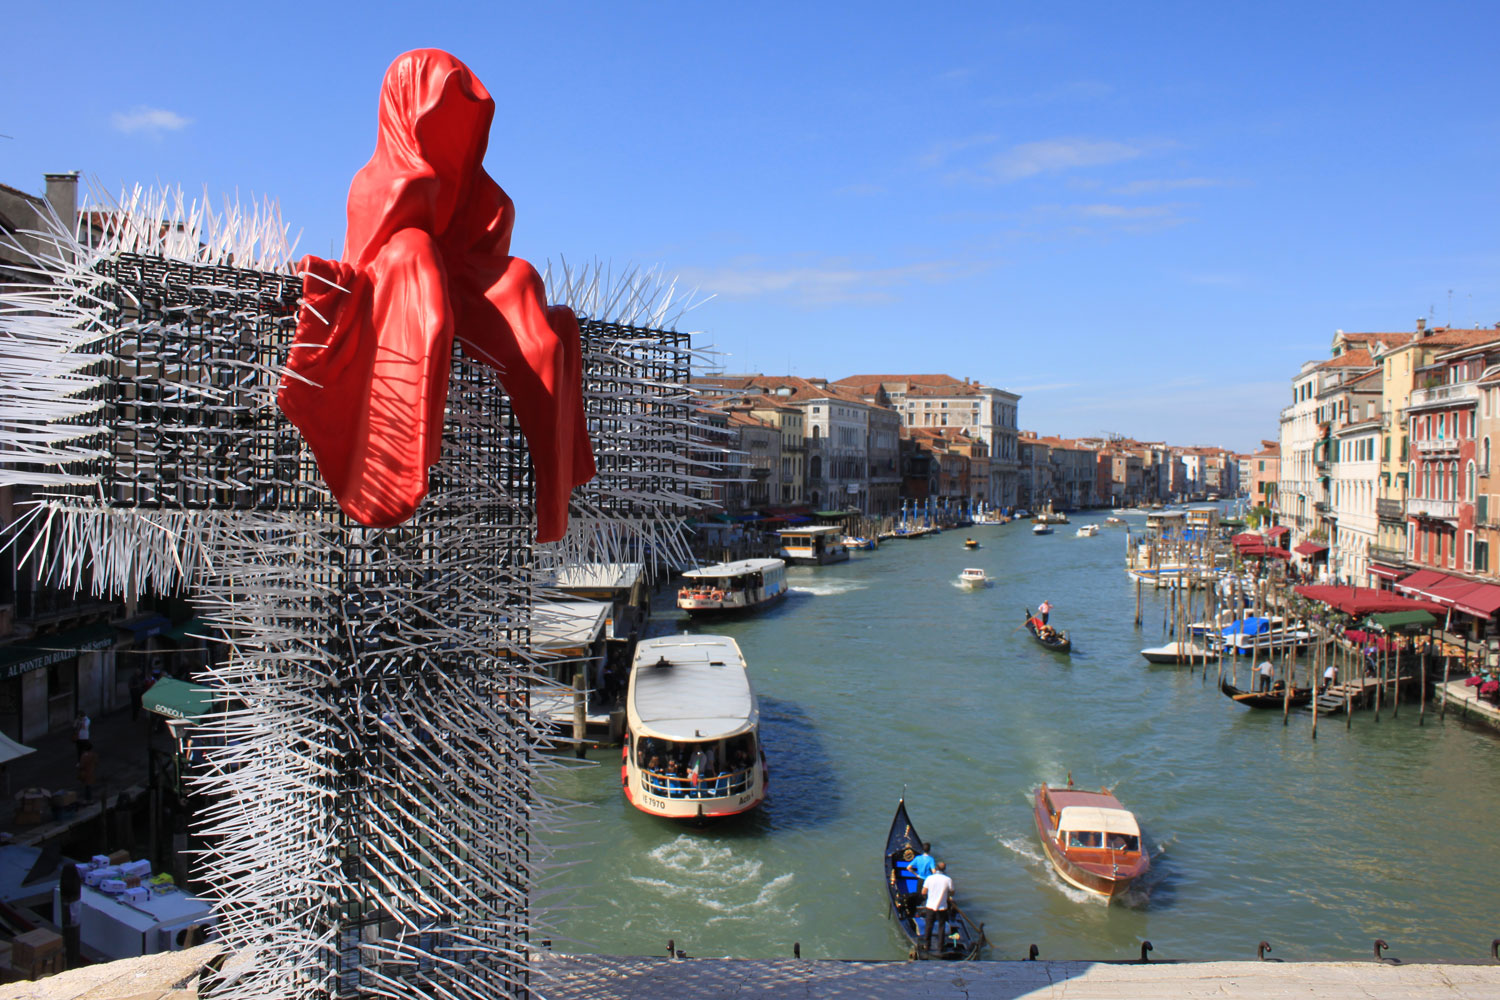 public-show-art-biennial-venice-italy-christoph-luckeneder-manfred-kielnhofer-t-guardian-sculpture-art-arts-2590